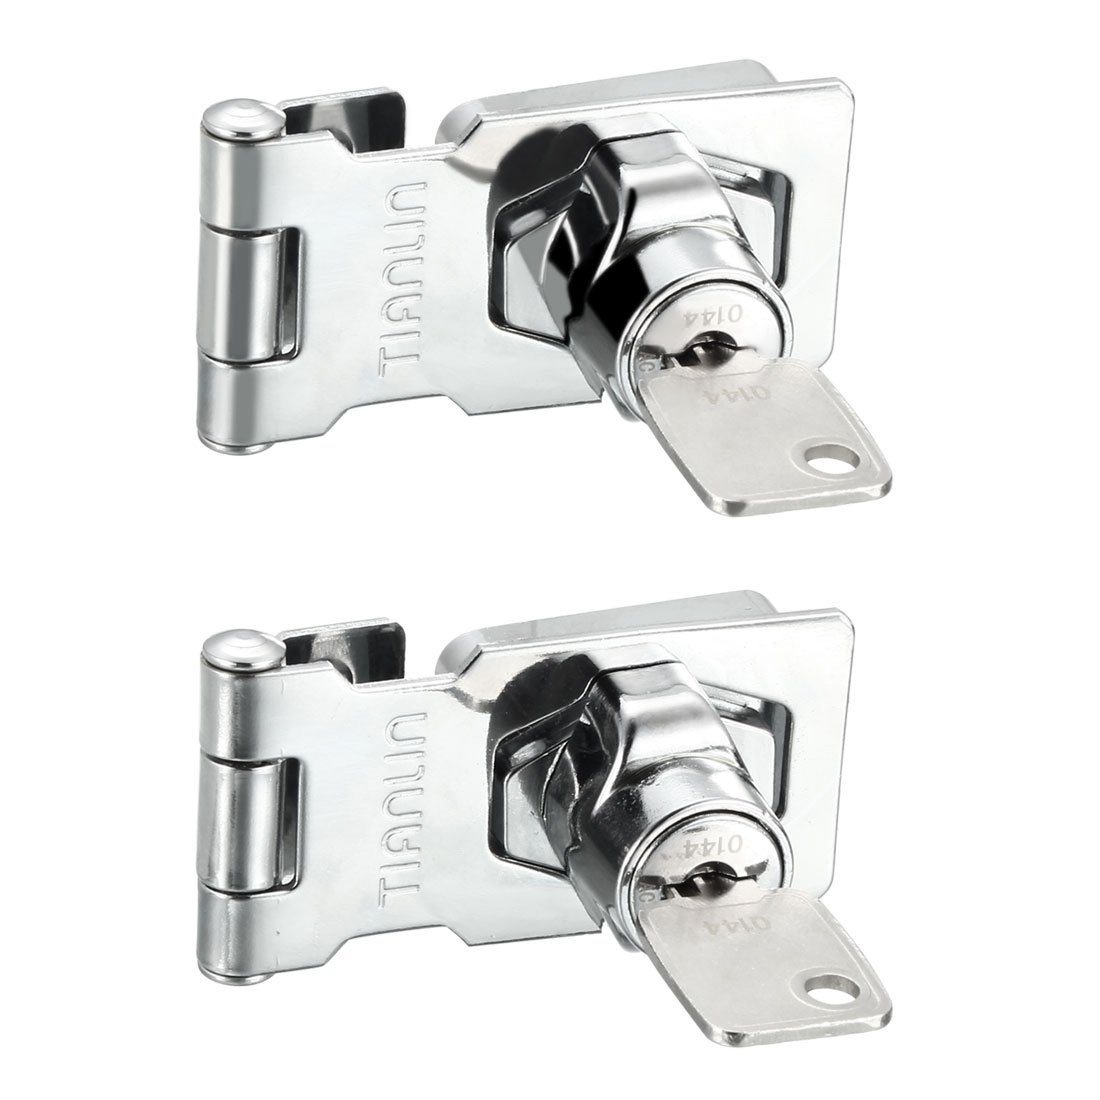 uxcell Keyed Hasp Lock Latch Lock for Doors Cabinets Silver, Zinc Alloy Plated, 3.07''x1.42'', 2pcs